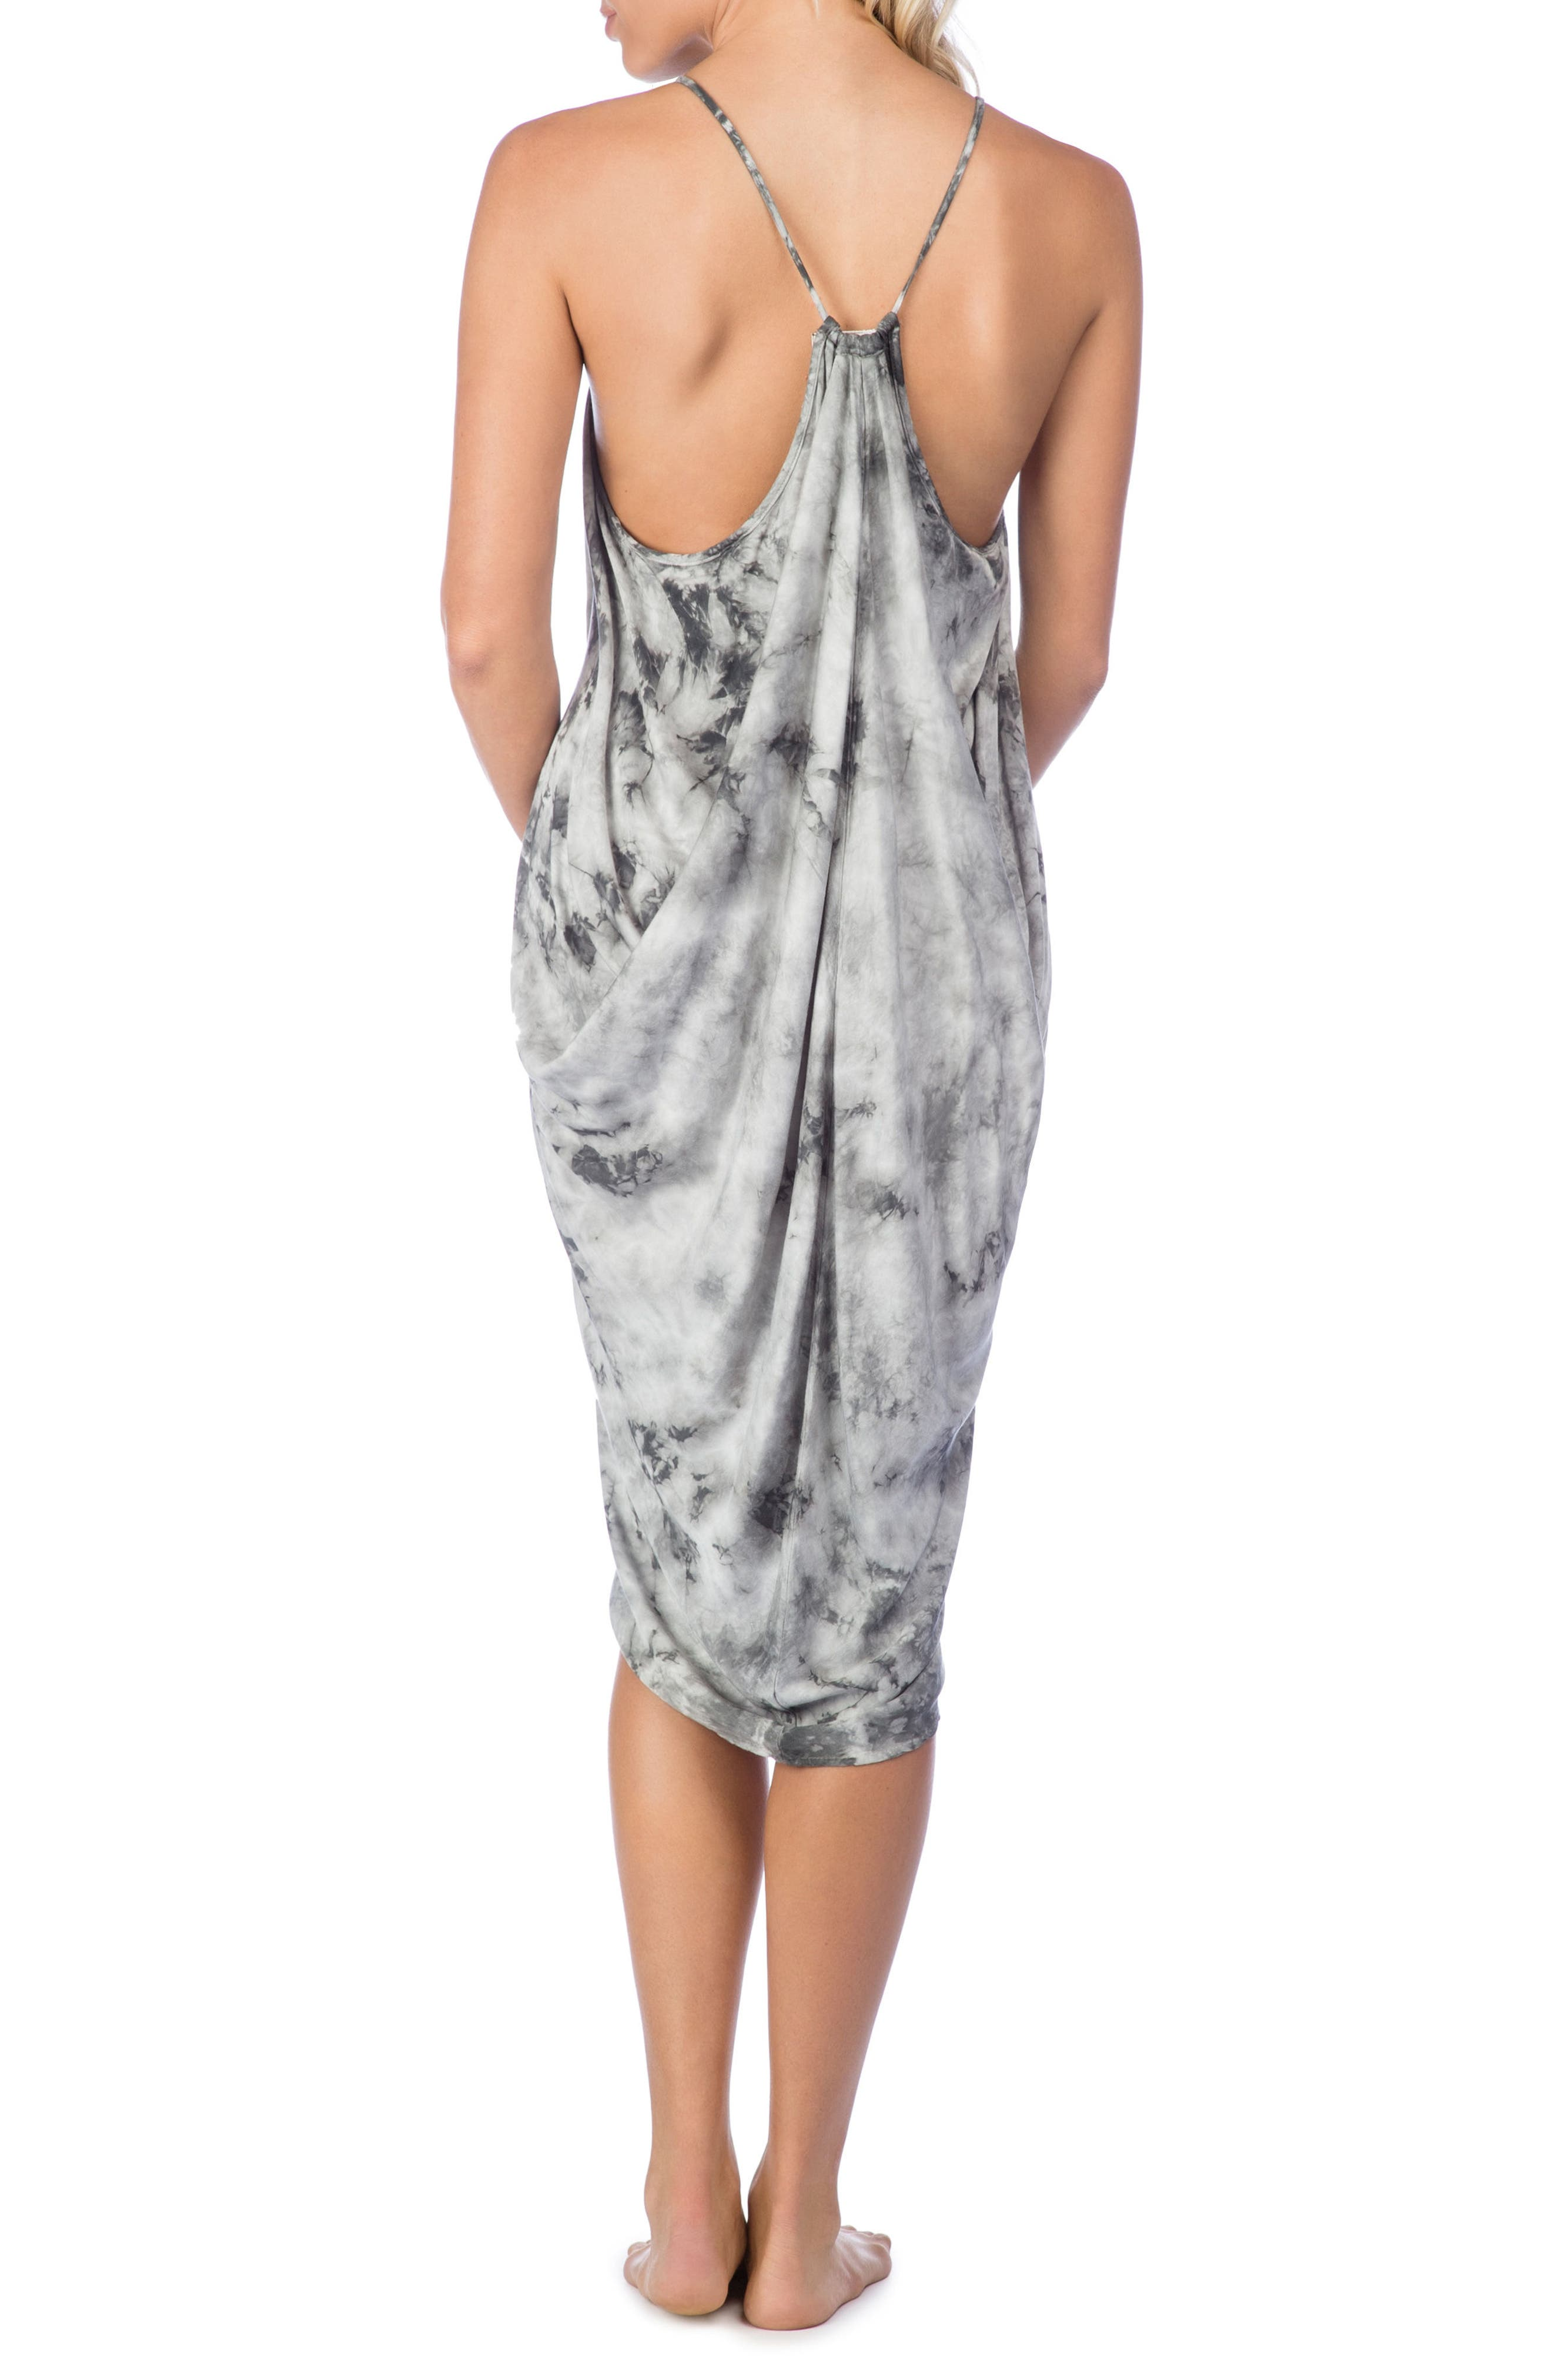 Crystal Forest Genvieve Cover-Up Dress,                             Alternate thumbnail 2, color,                             Charcoal